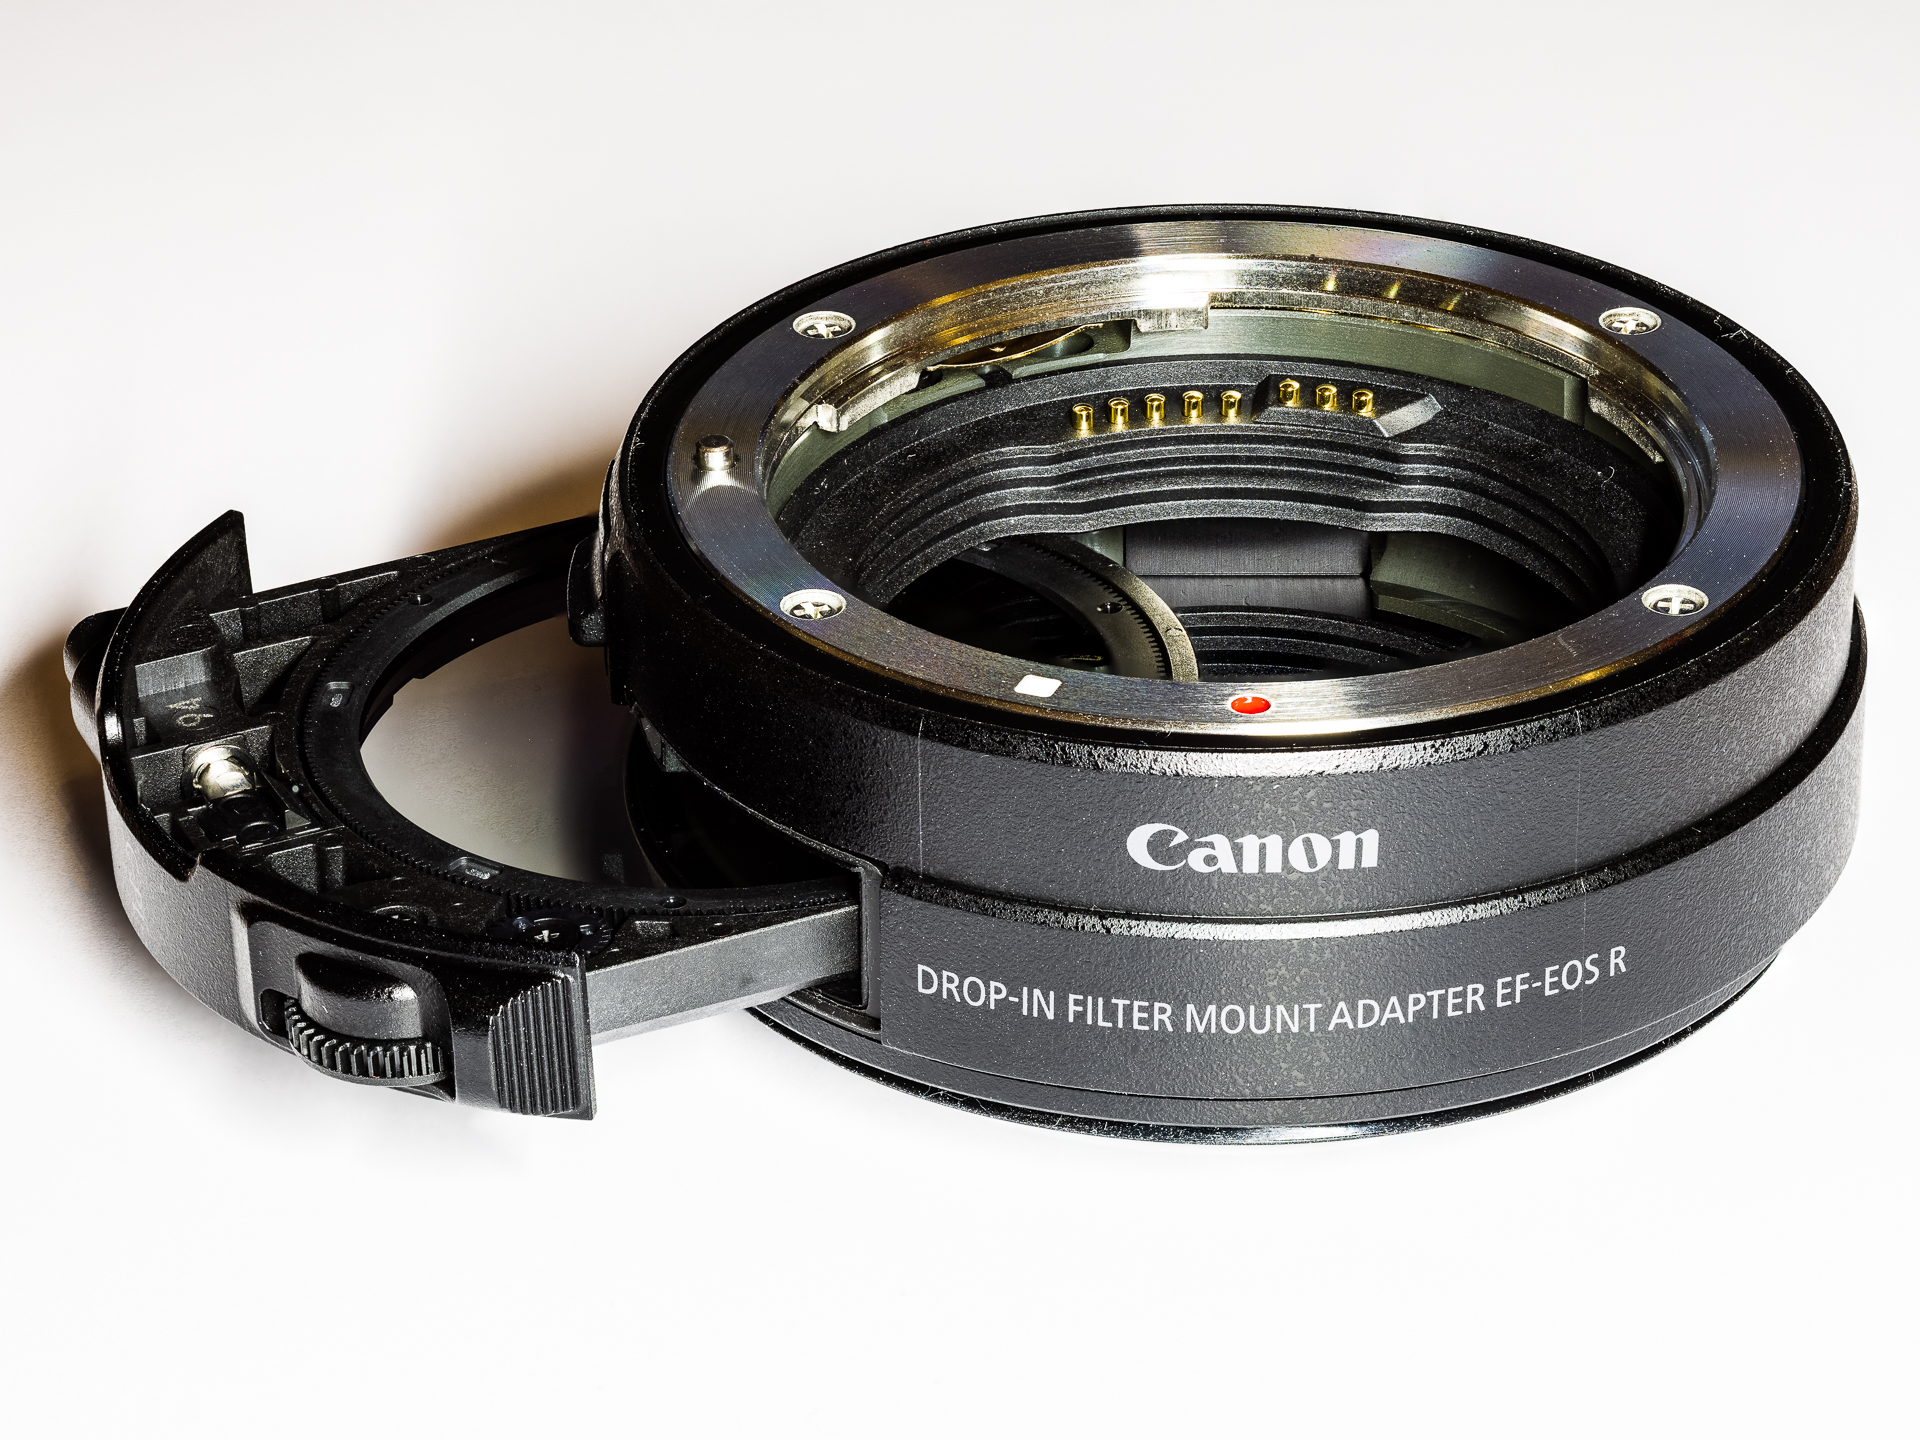 Drop-In Filter Mount Adapter EF-EOS R mit C-PL Polfilter